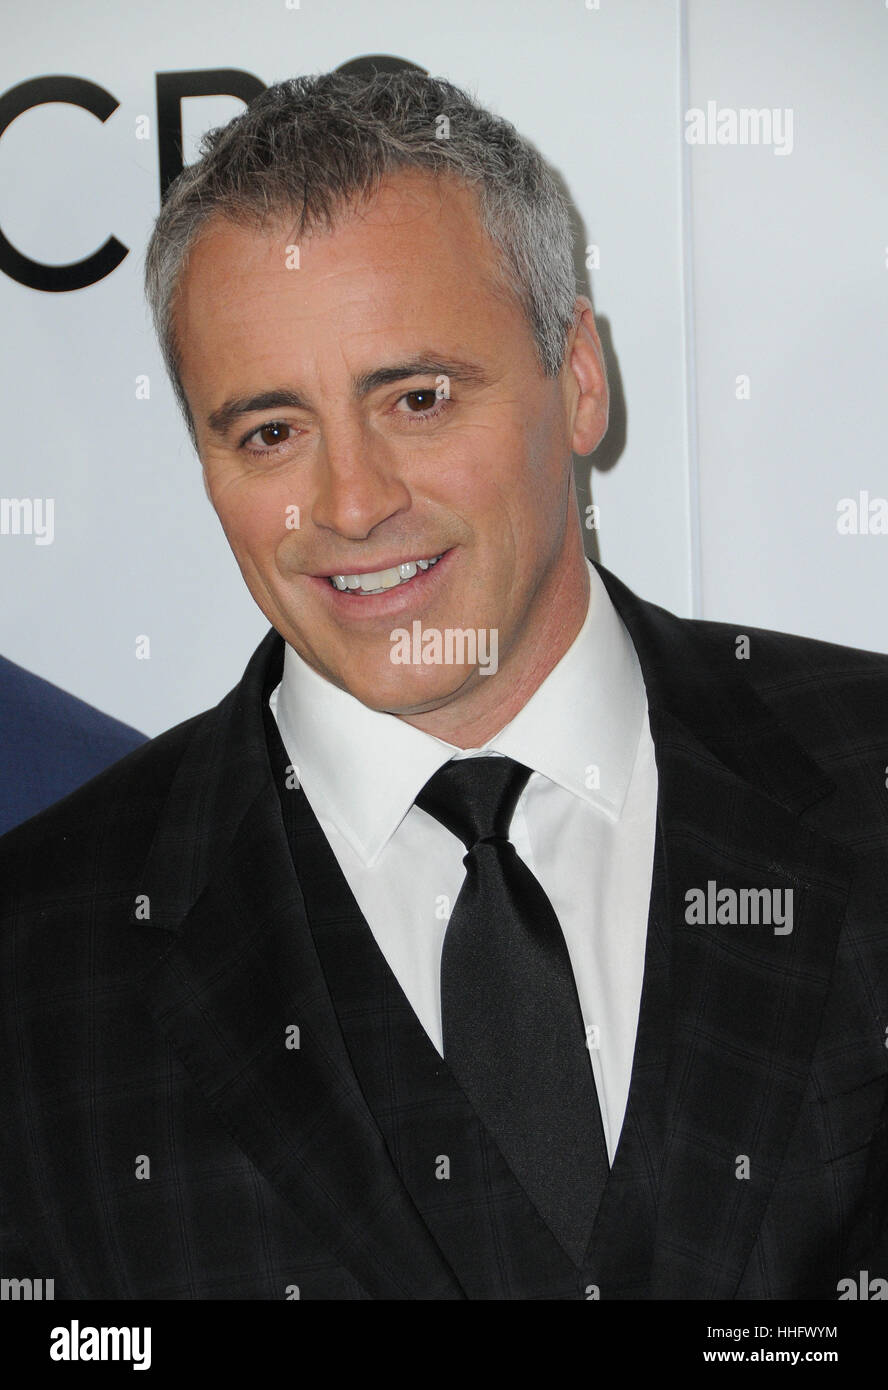 Los Angeles, CA, USA. 18 janvier, 2017. 18 janvier 2017 - Los Angeles, Californie - Matt LeBlanc. 2017 People's Photo Stock